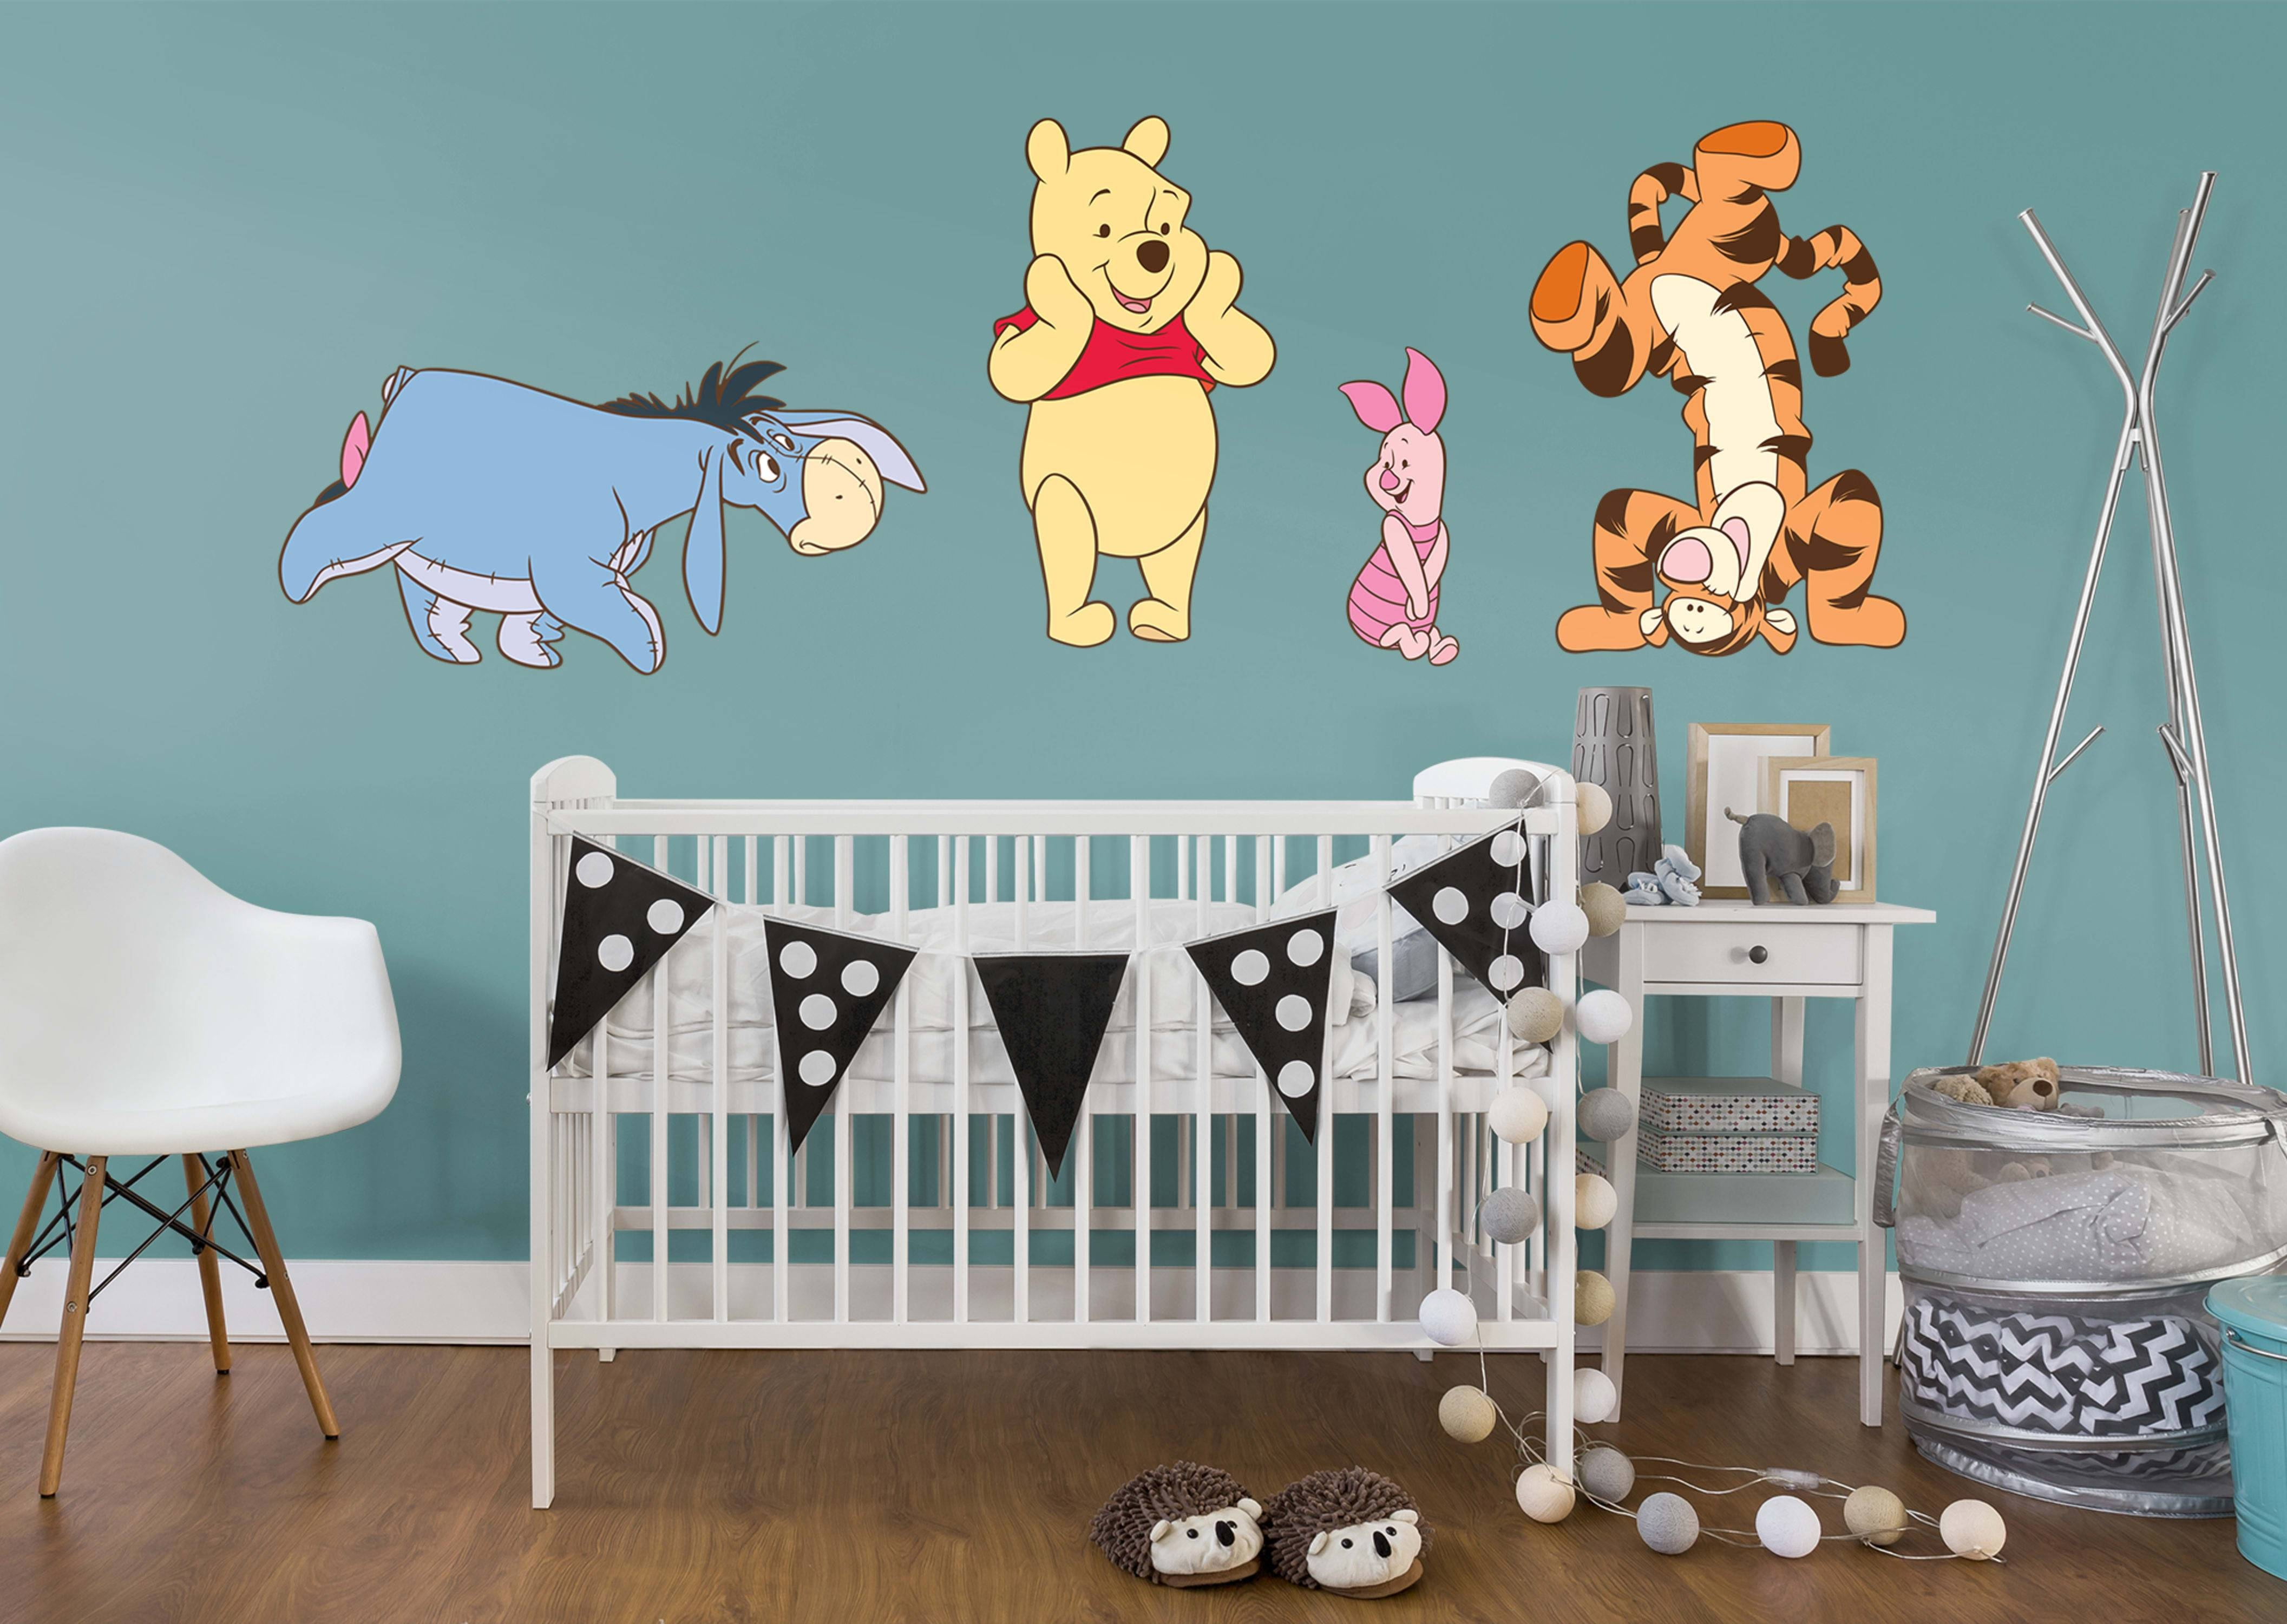 Winnie The Pooh Wall Stickers Image Collections – Home Wall With Latest Winnie The Pooh Vinyl Wall Art (View 20 of 20)